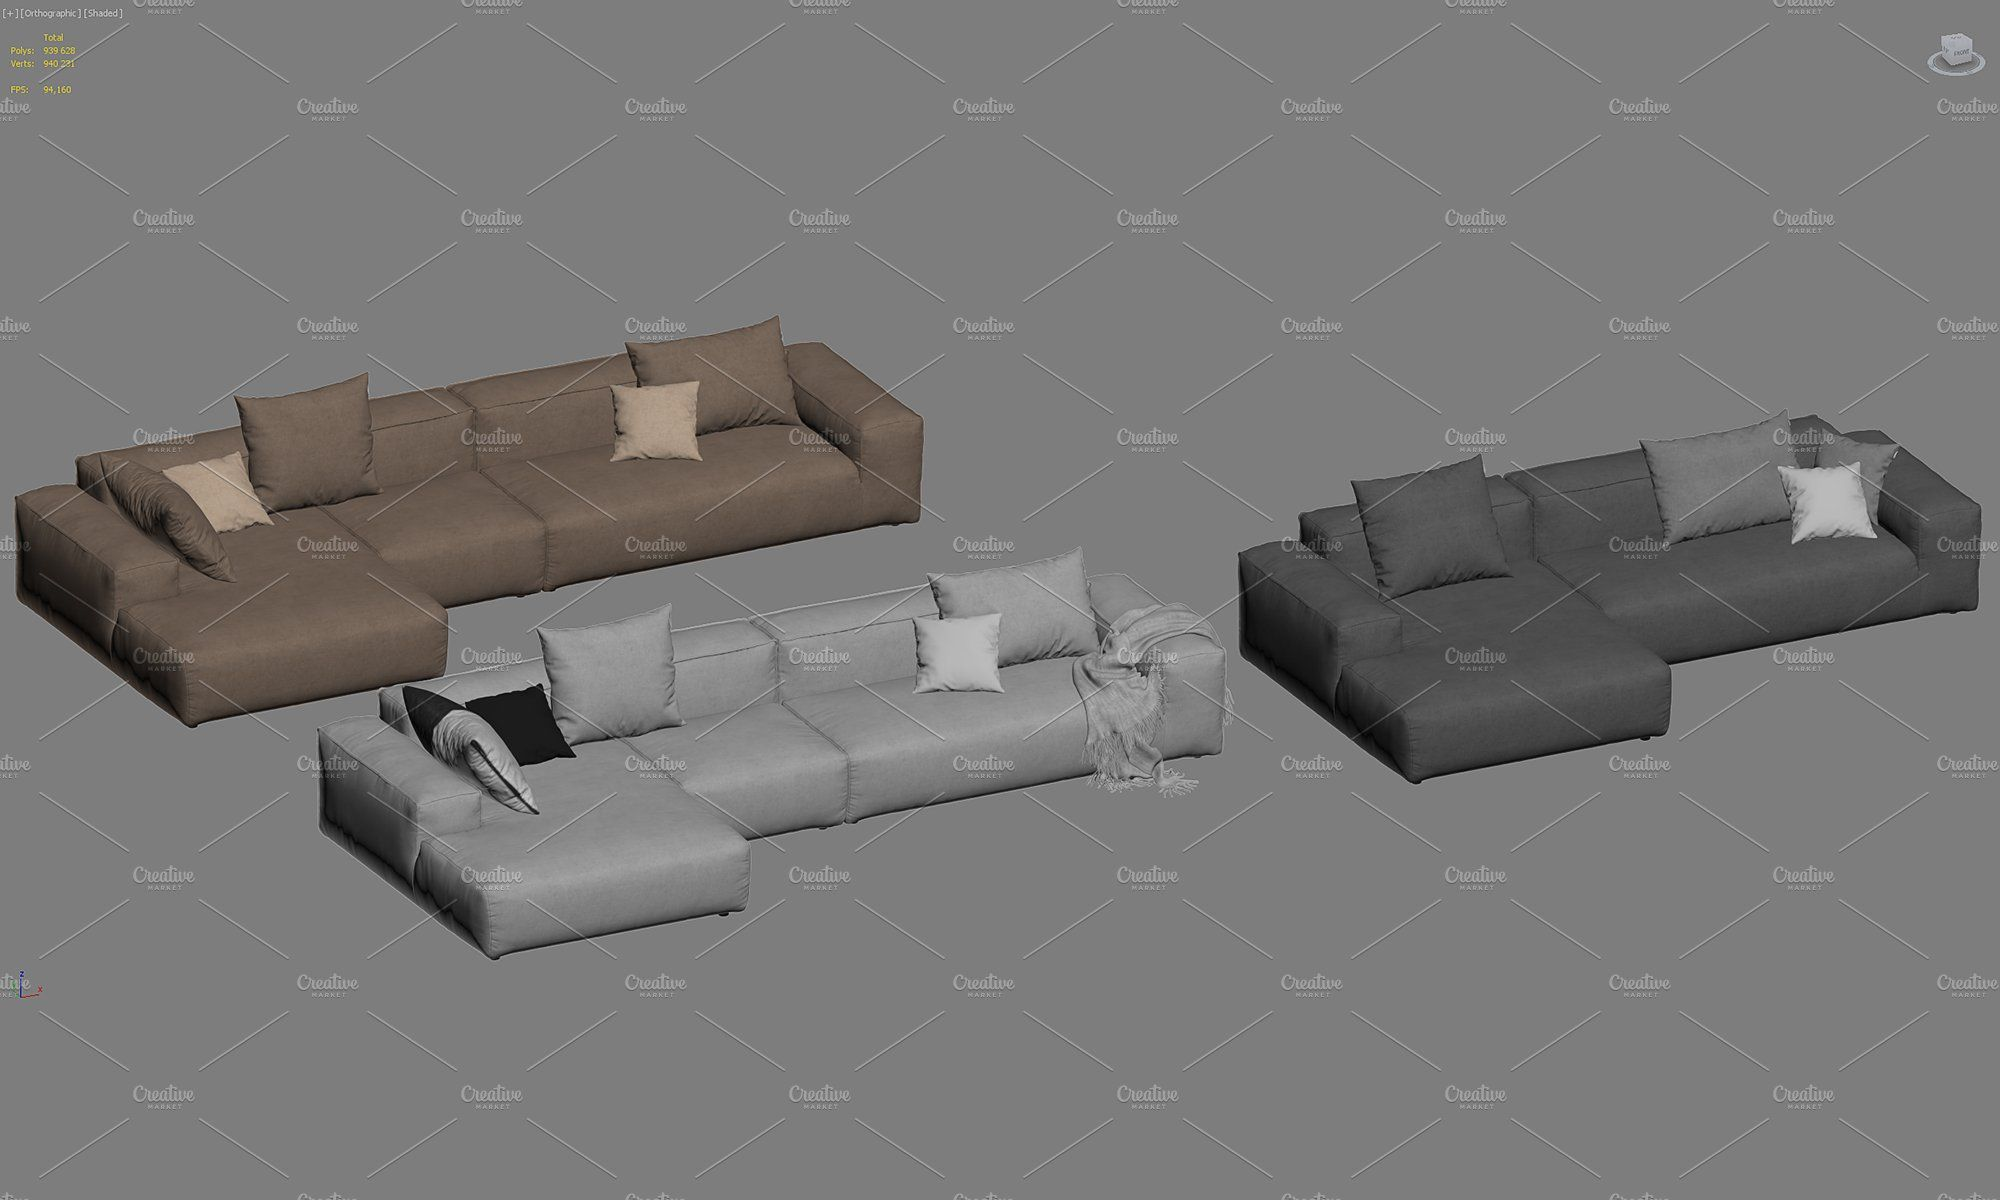 Freistil Sofa Freistil 175 Corner Sofas 3d Model | Modular Corner Sofa, Corner Sofa, Sectional Couch